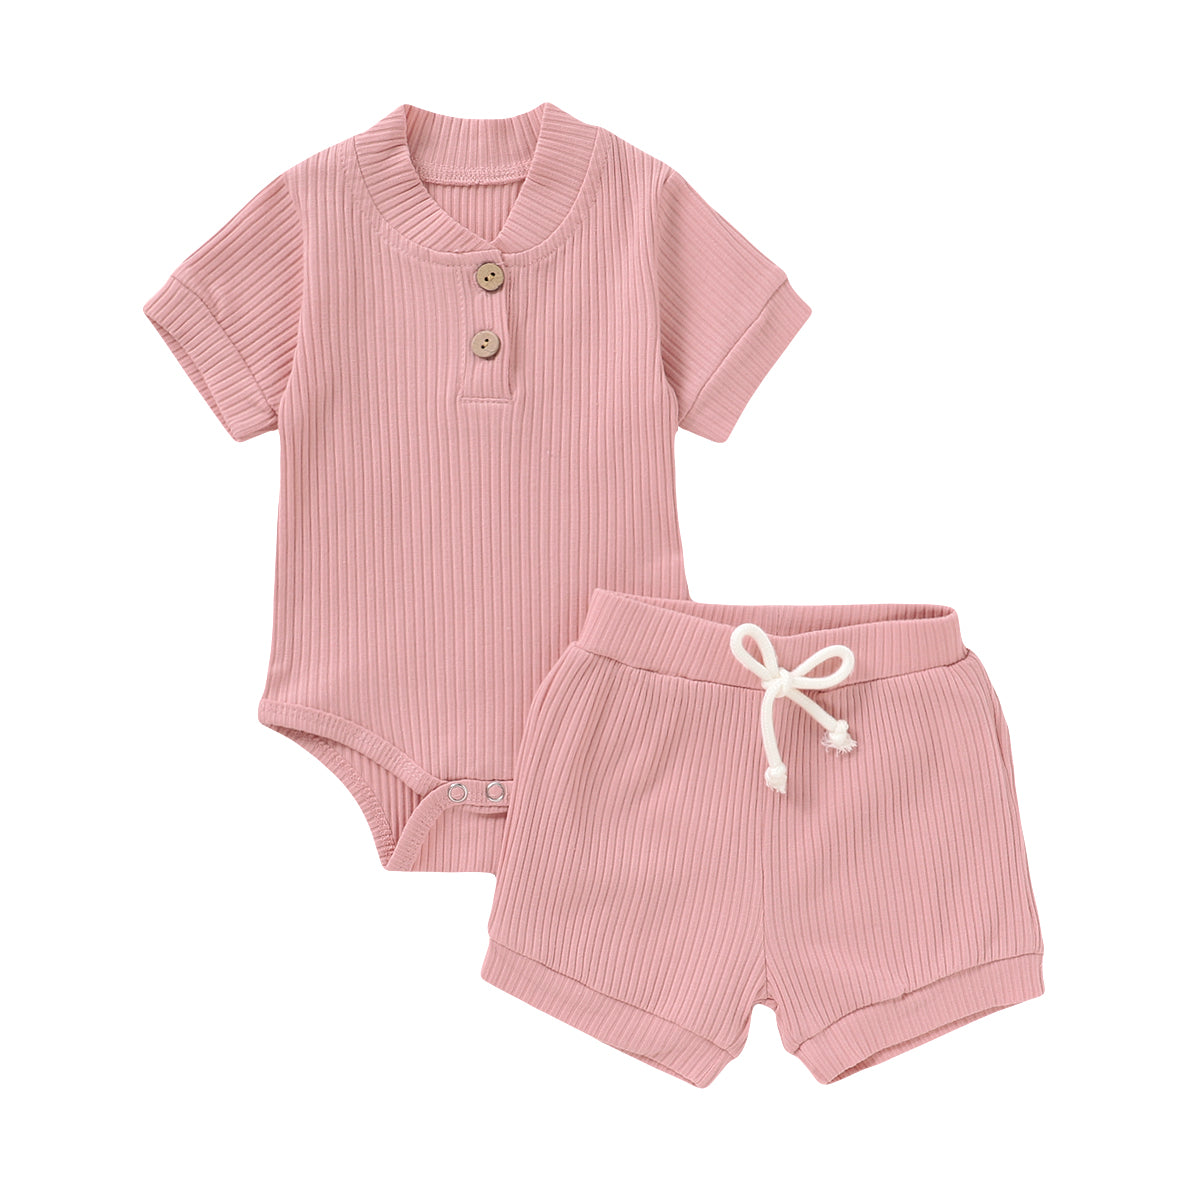 Baby Bodysuits with Shorts Sleeve Pants